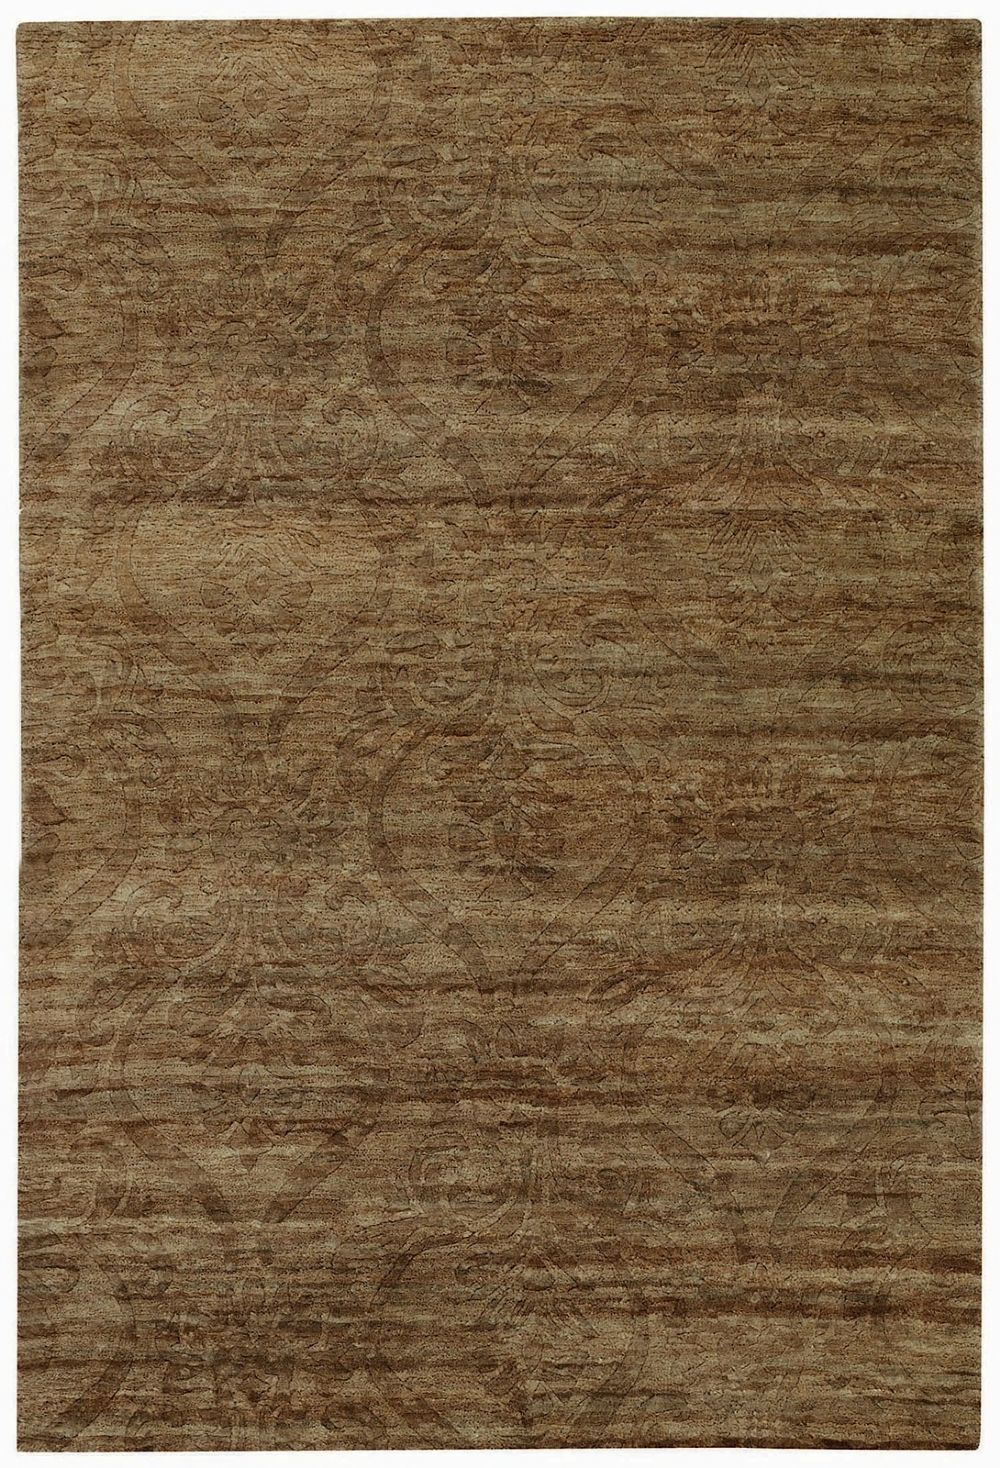 capel cypress-brocade contemporary area rug collection